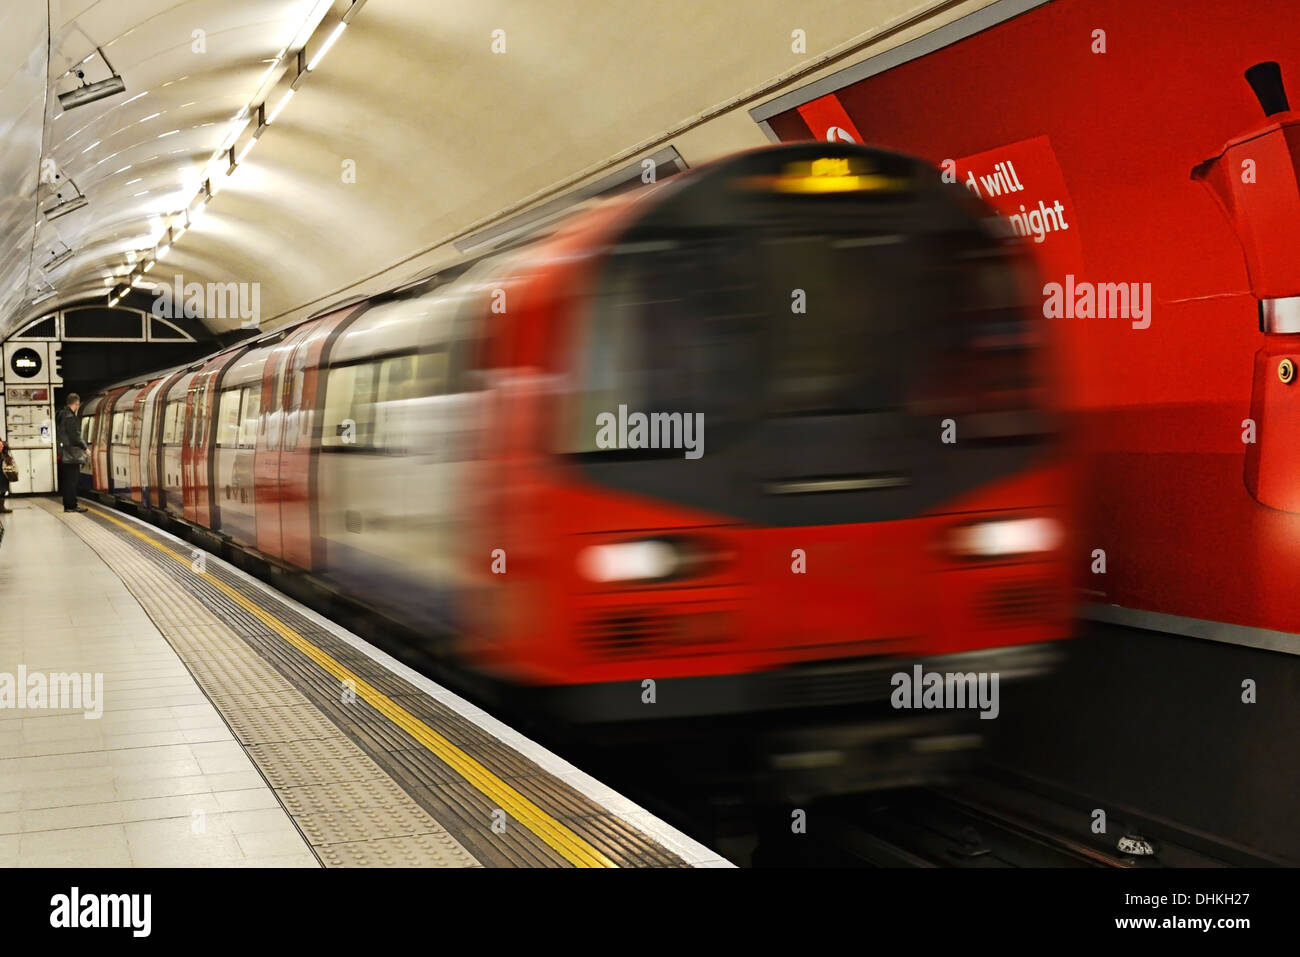 London Underground Train Pulling into a Station, Charing Cross, London, Uk. - Stock Image